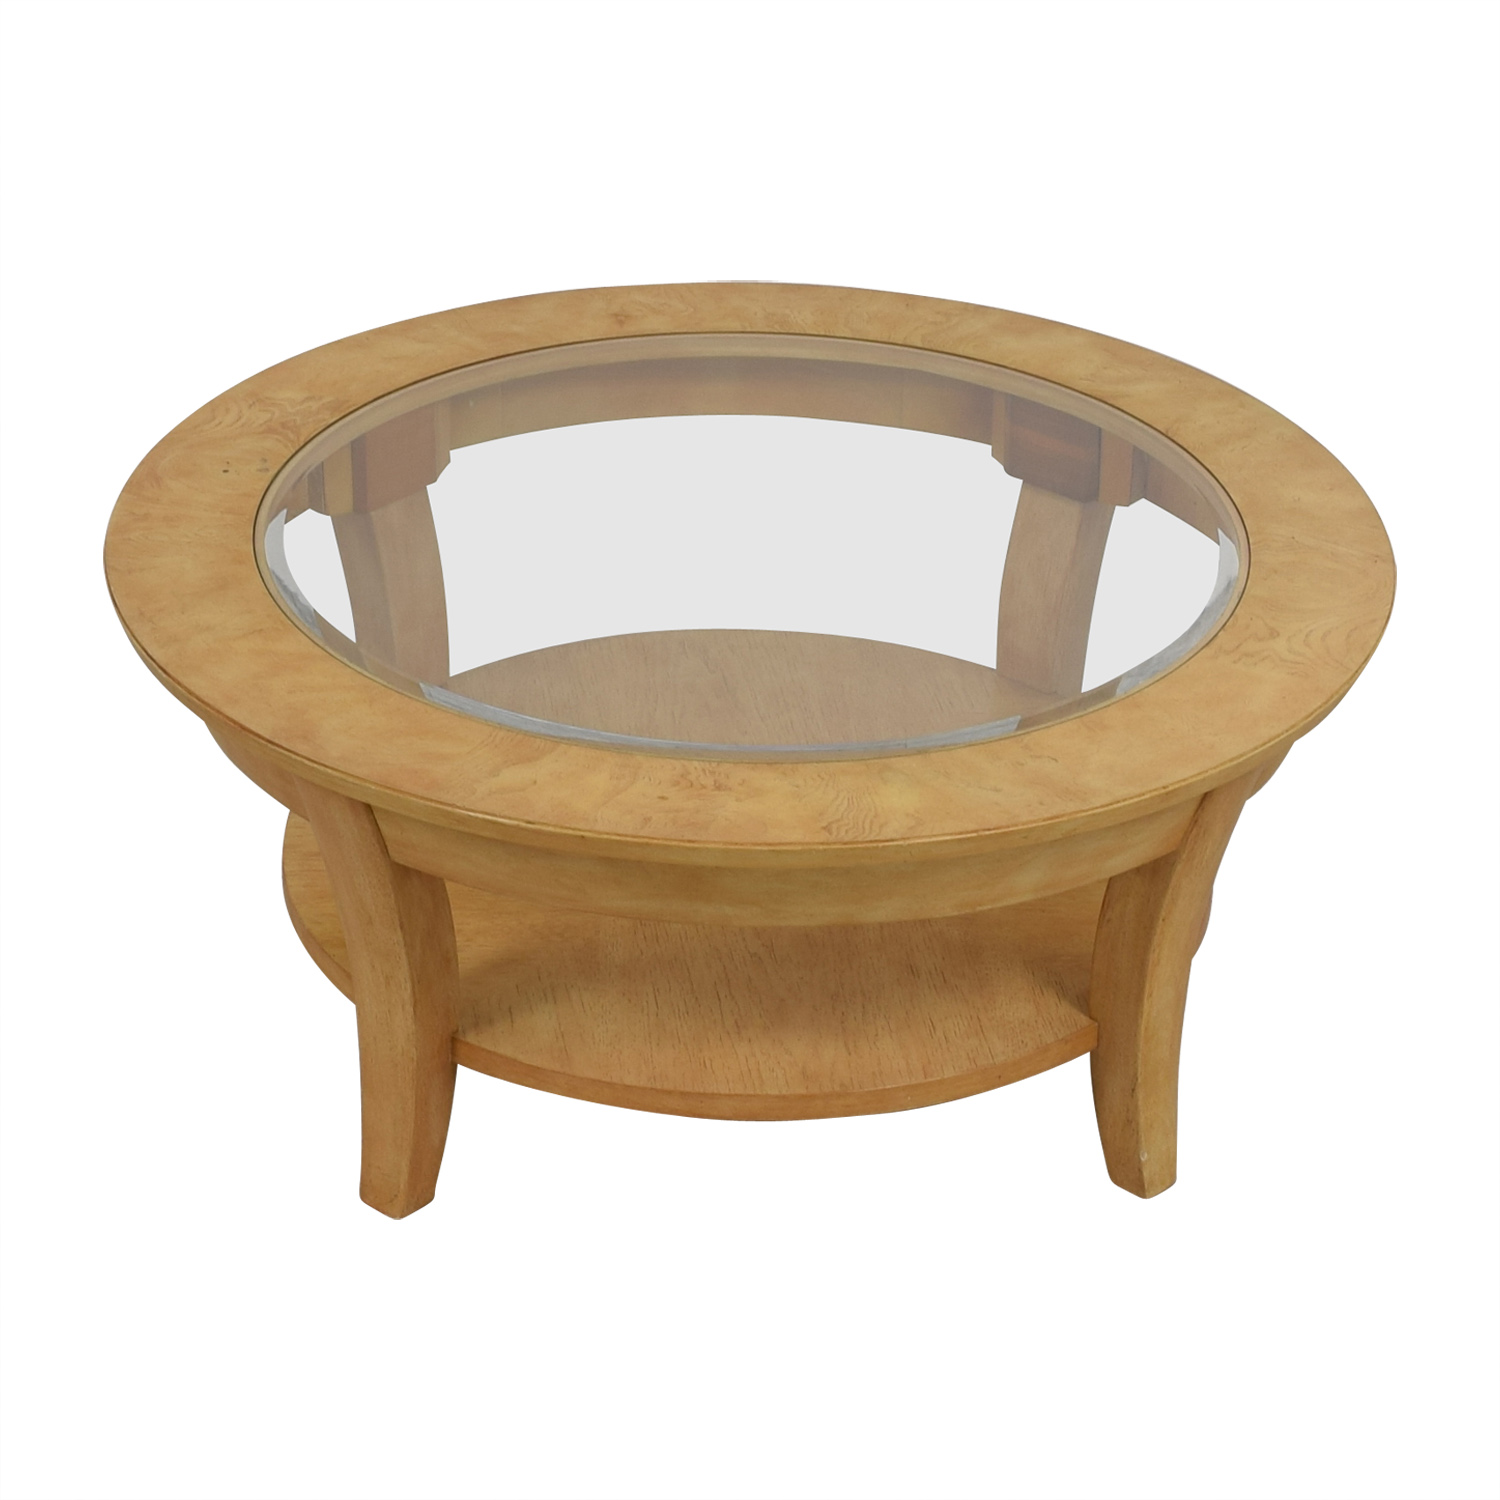 Round Glass and Wood Cocktail Table used